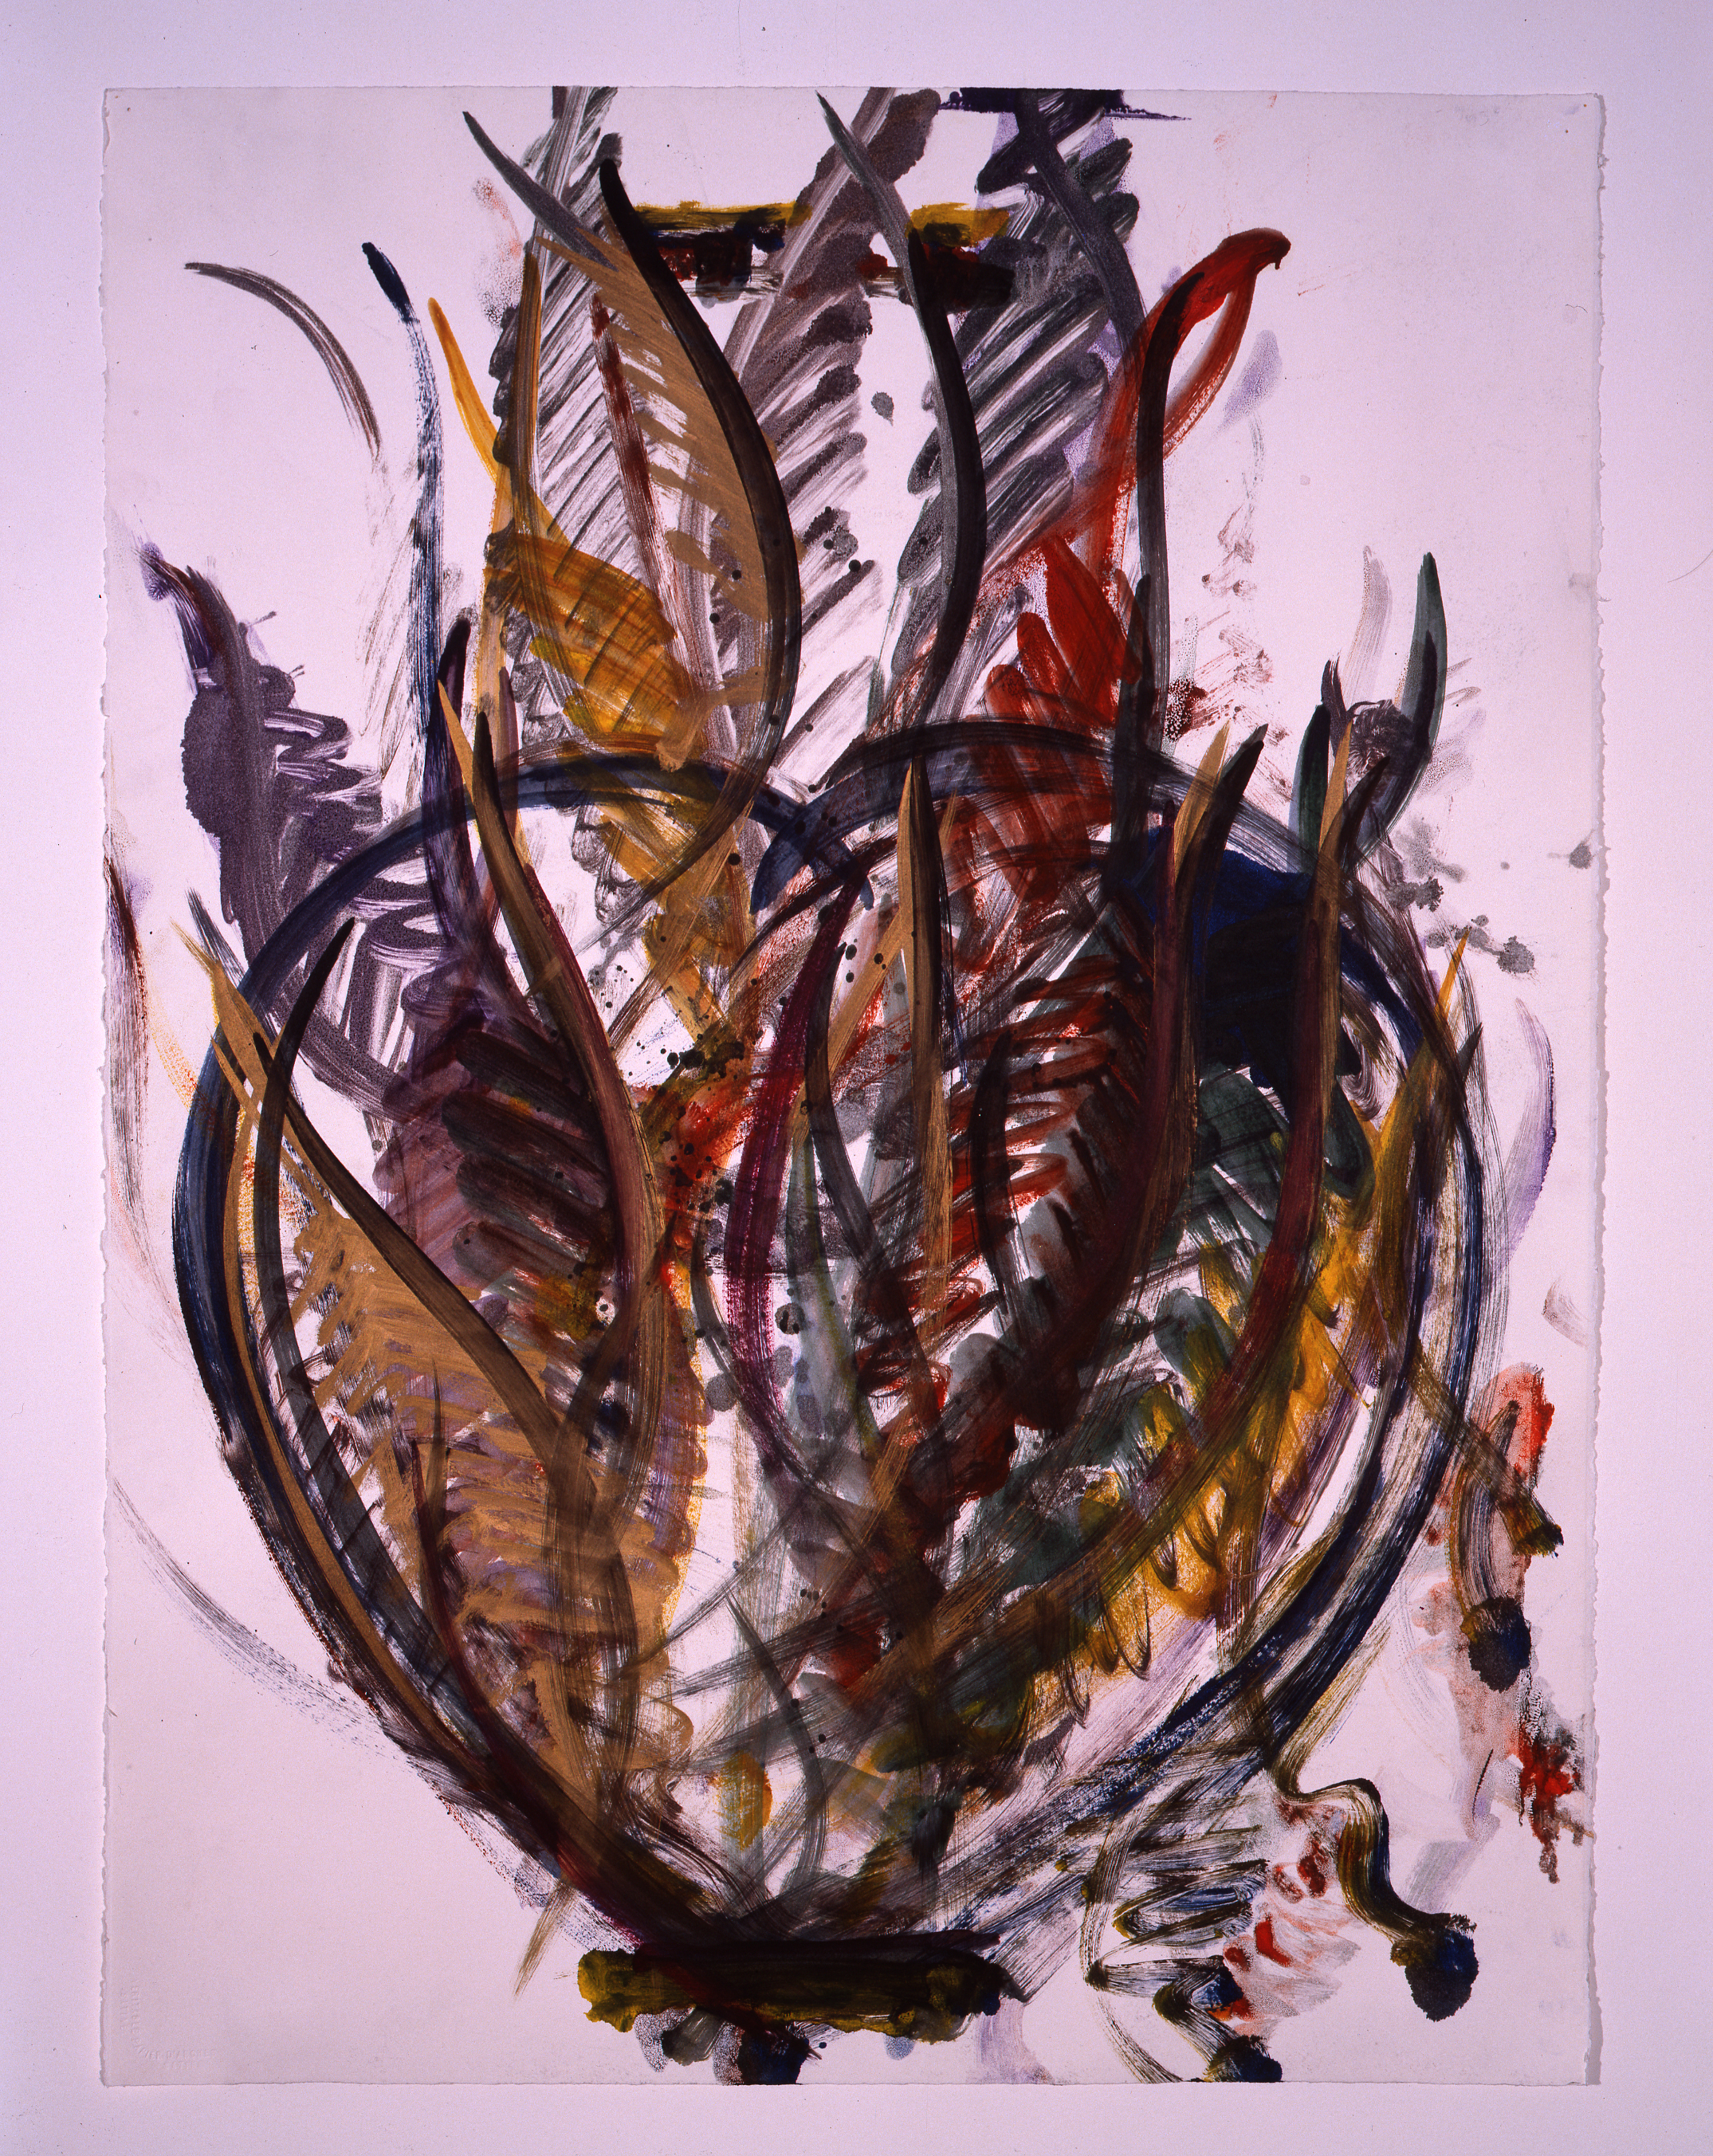 Dale Chihuly, Venetian Monoprint, (1989, ink on paper, 30 x 22 inches), DC.365